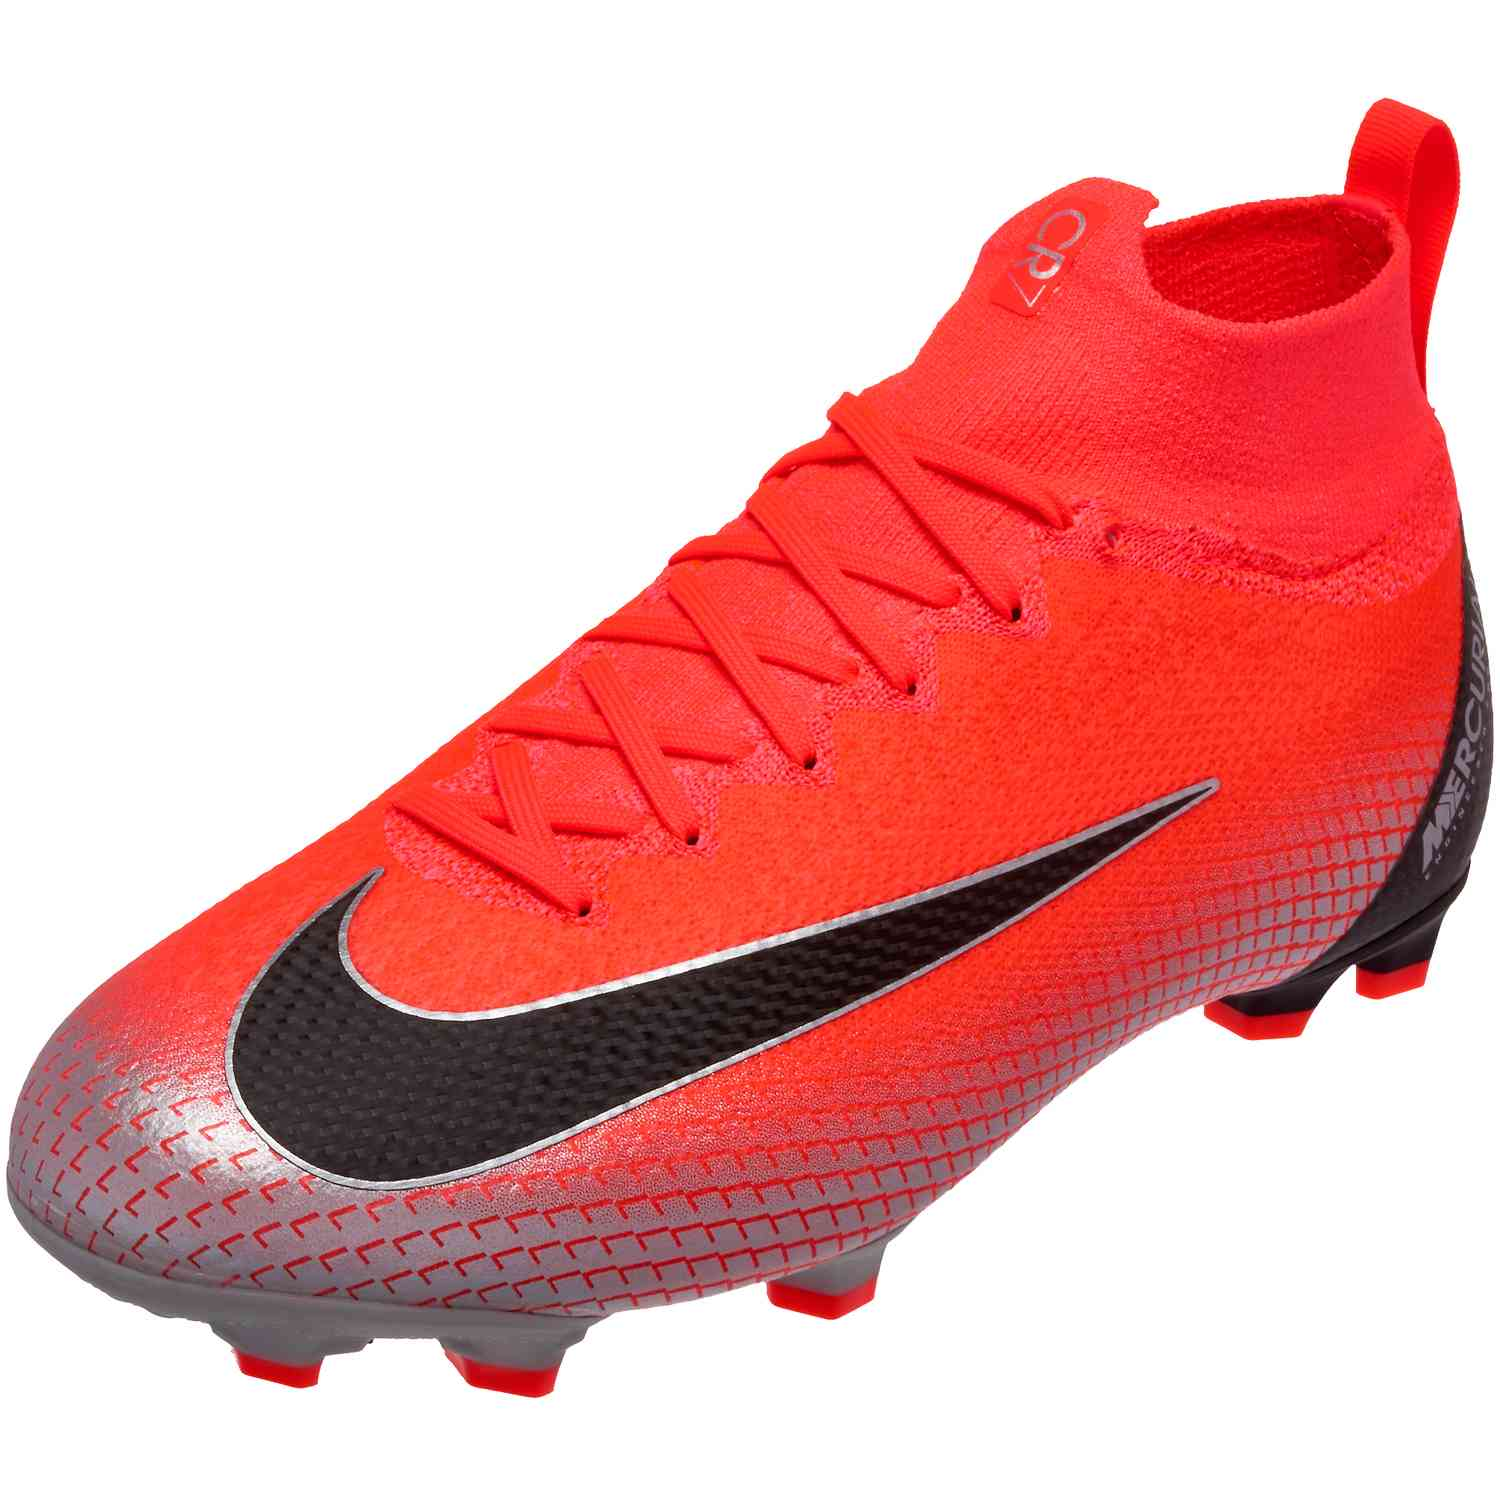 Kids Nike Superfly 6 Elite CR7 - Chapter 7 - SoccerPro.com 6459edb62eb3